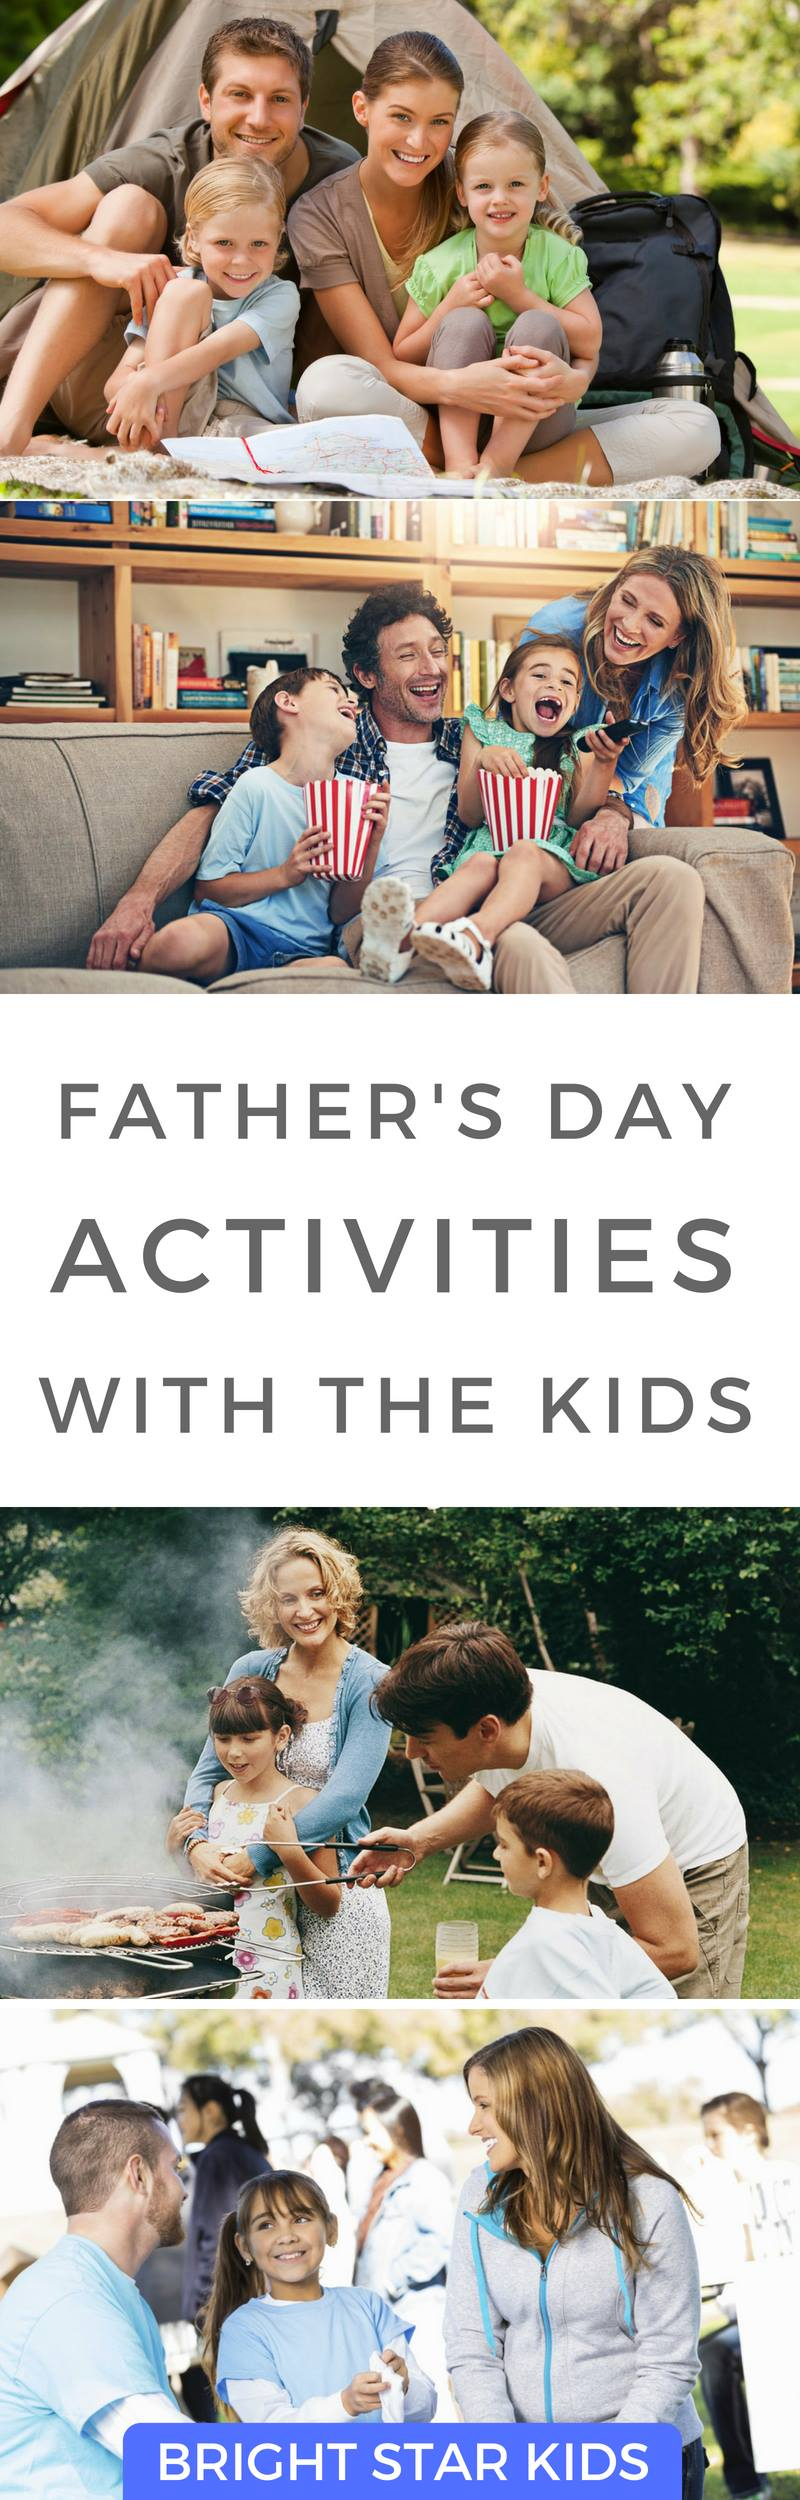 father's day activities